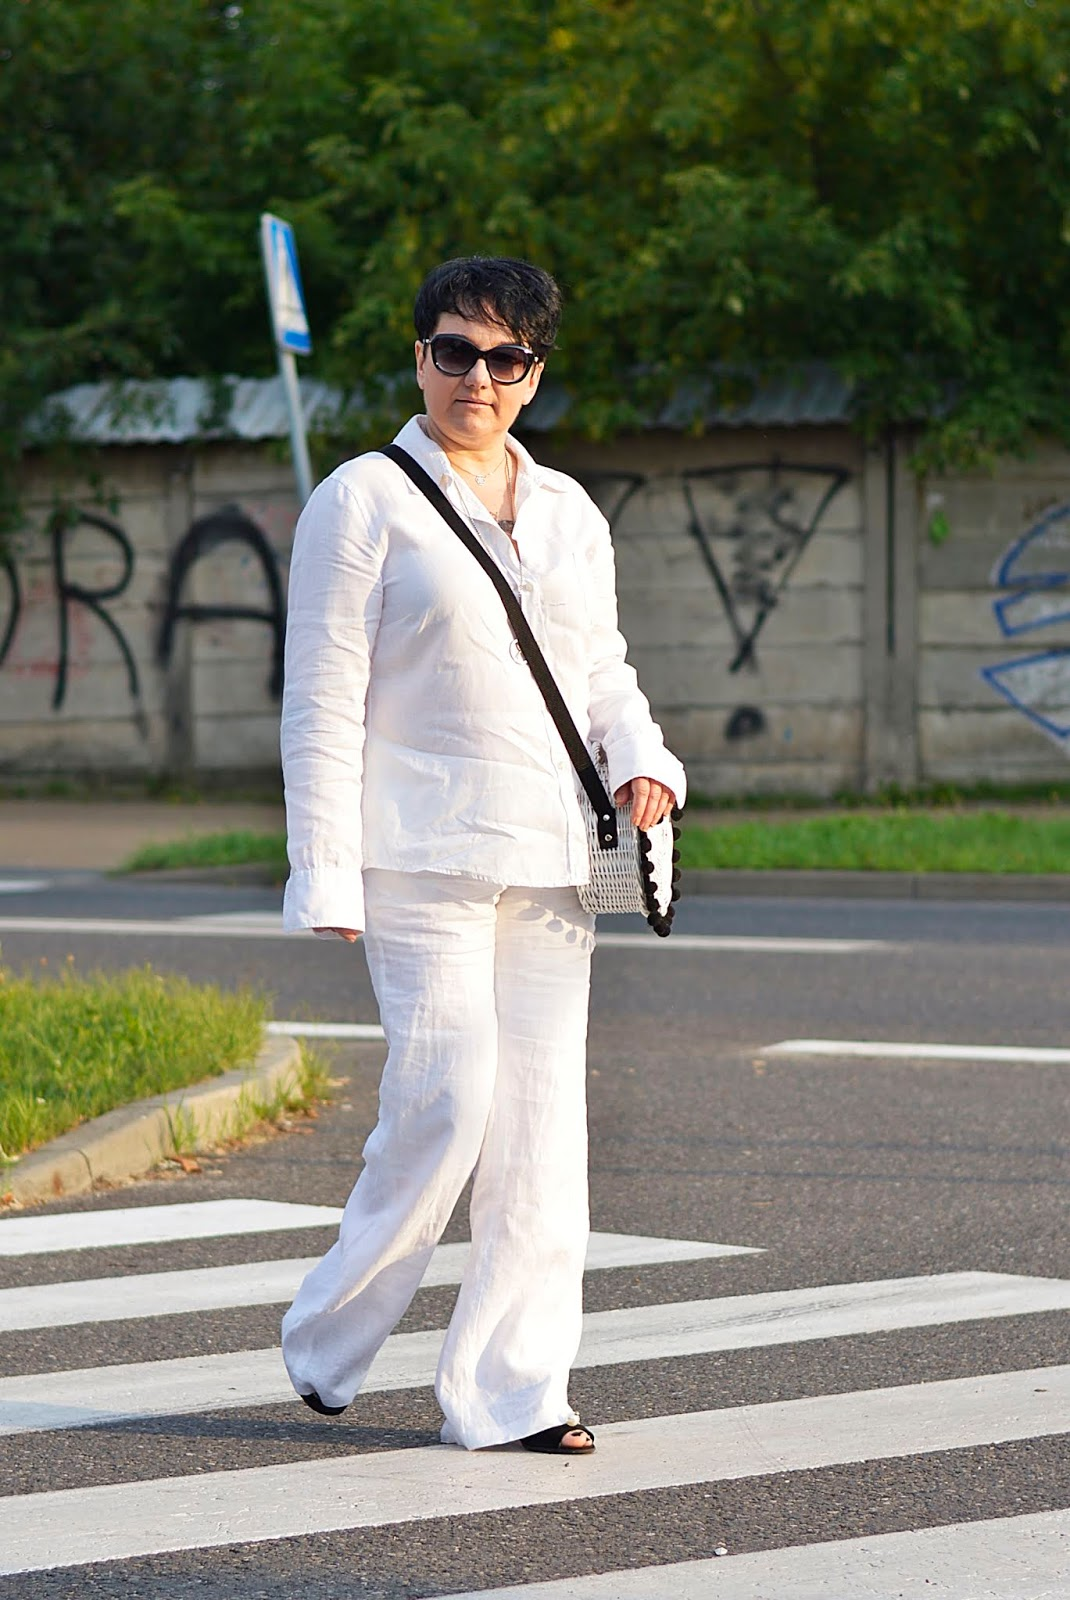 Linen stylization, white total look